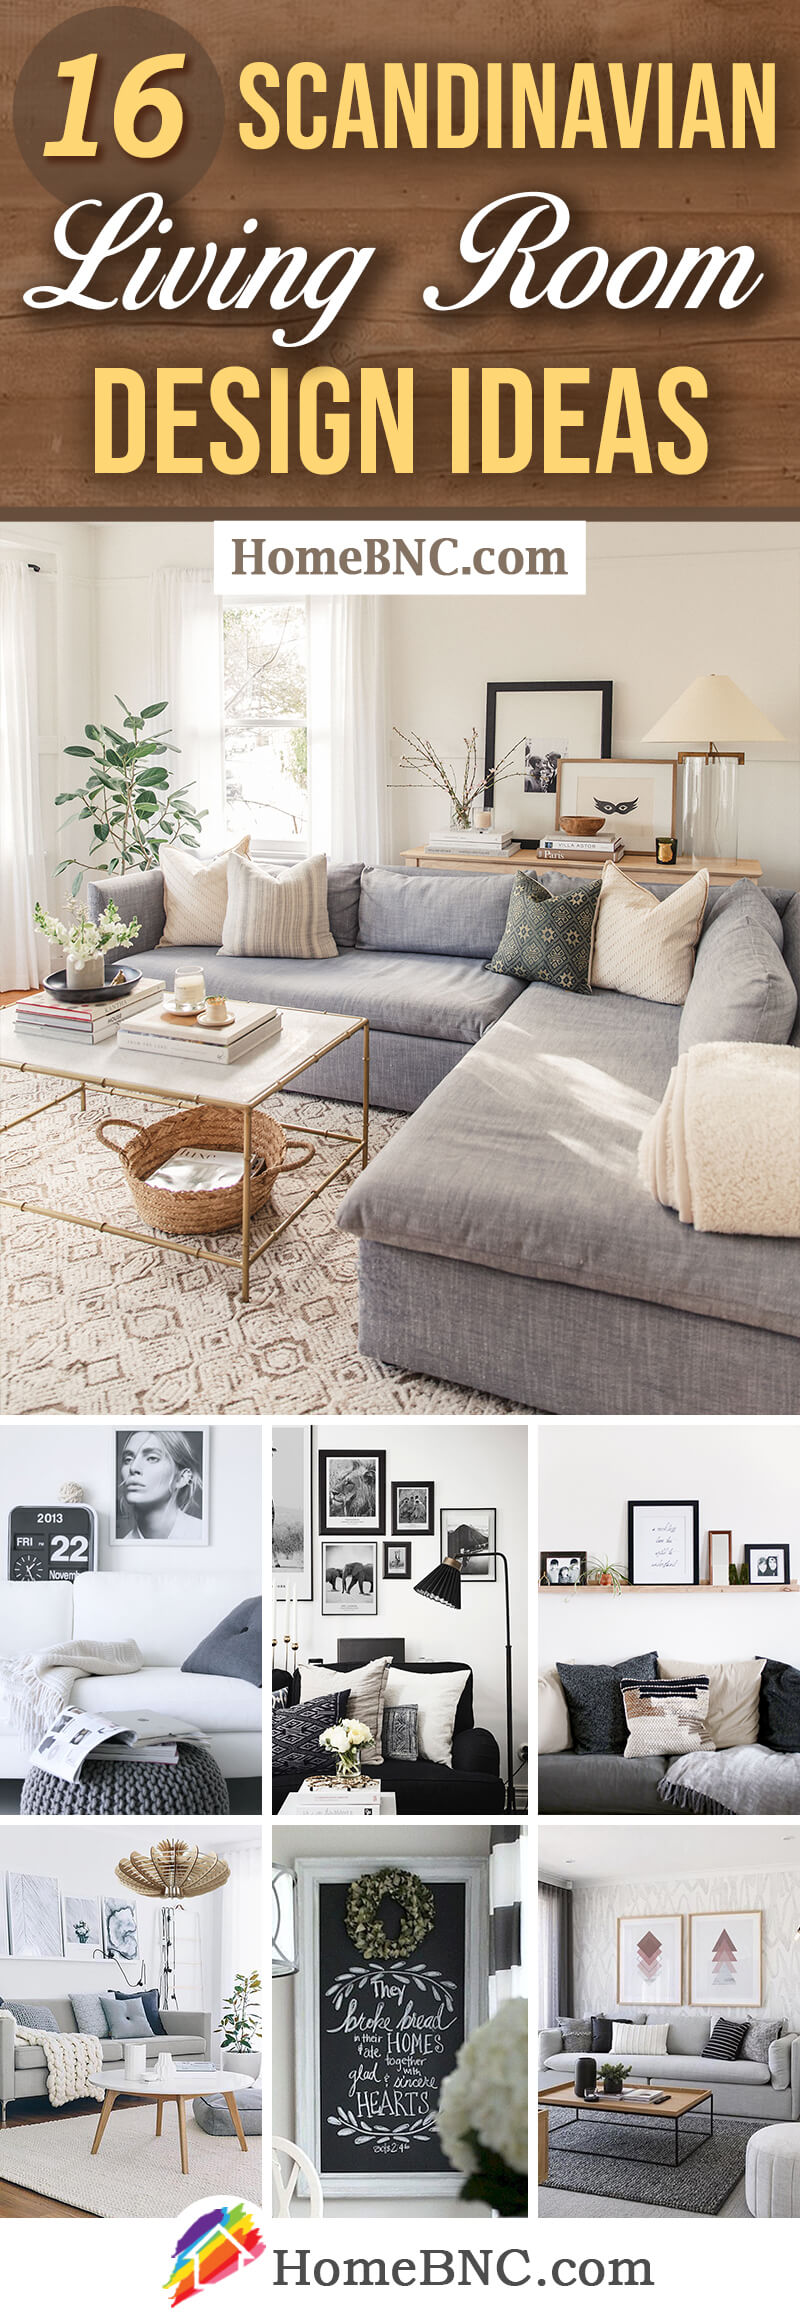 Best Scandinavian Living Room Ideas and Designs